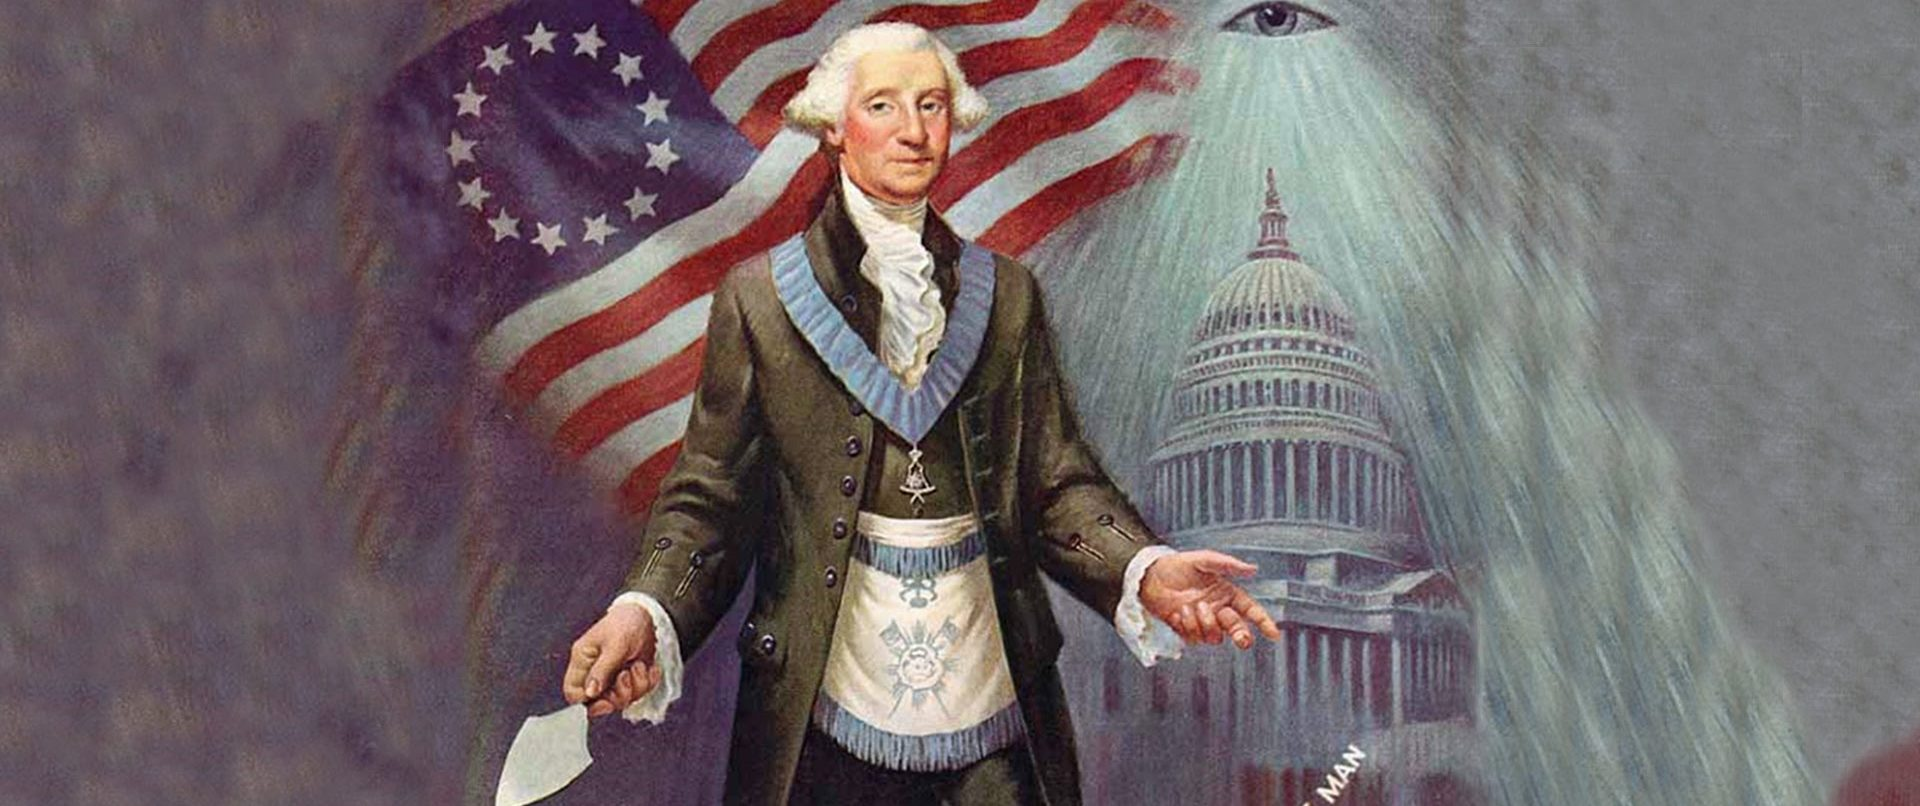 Uitleg Schootsvel George Washington 1